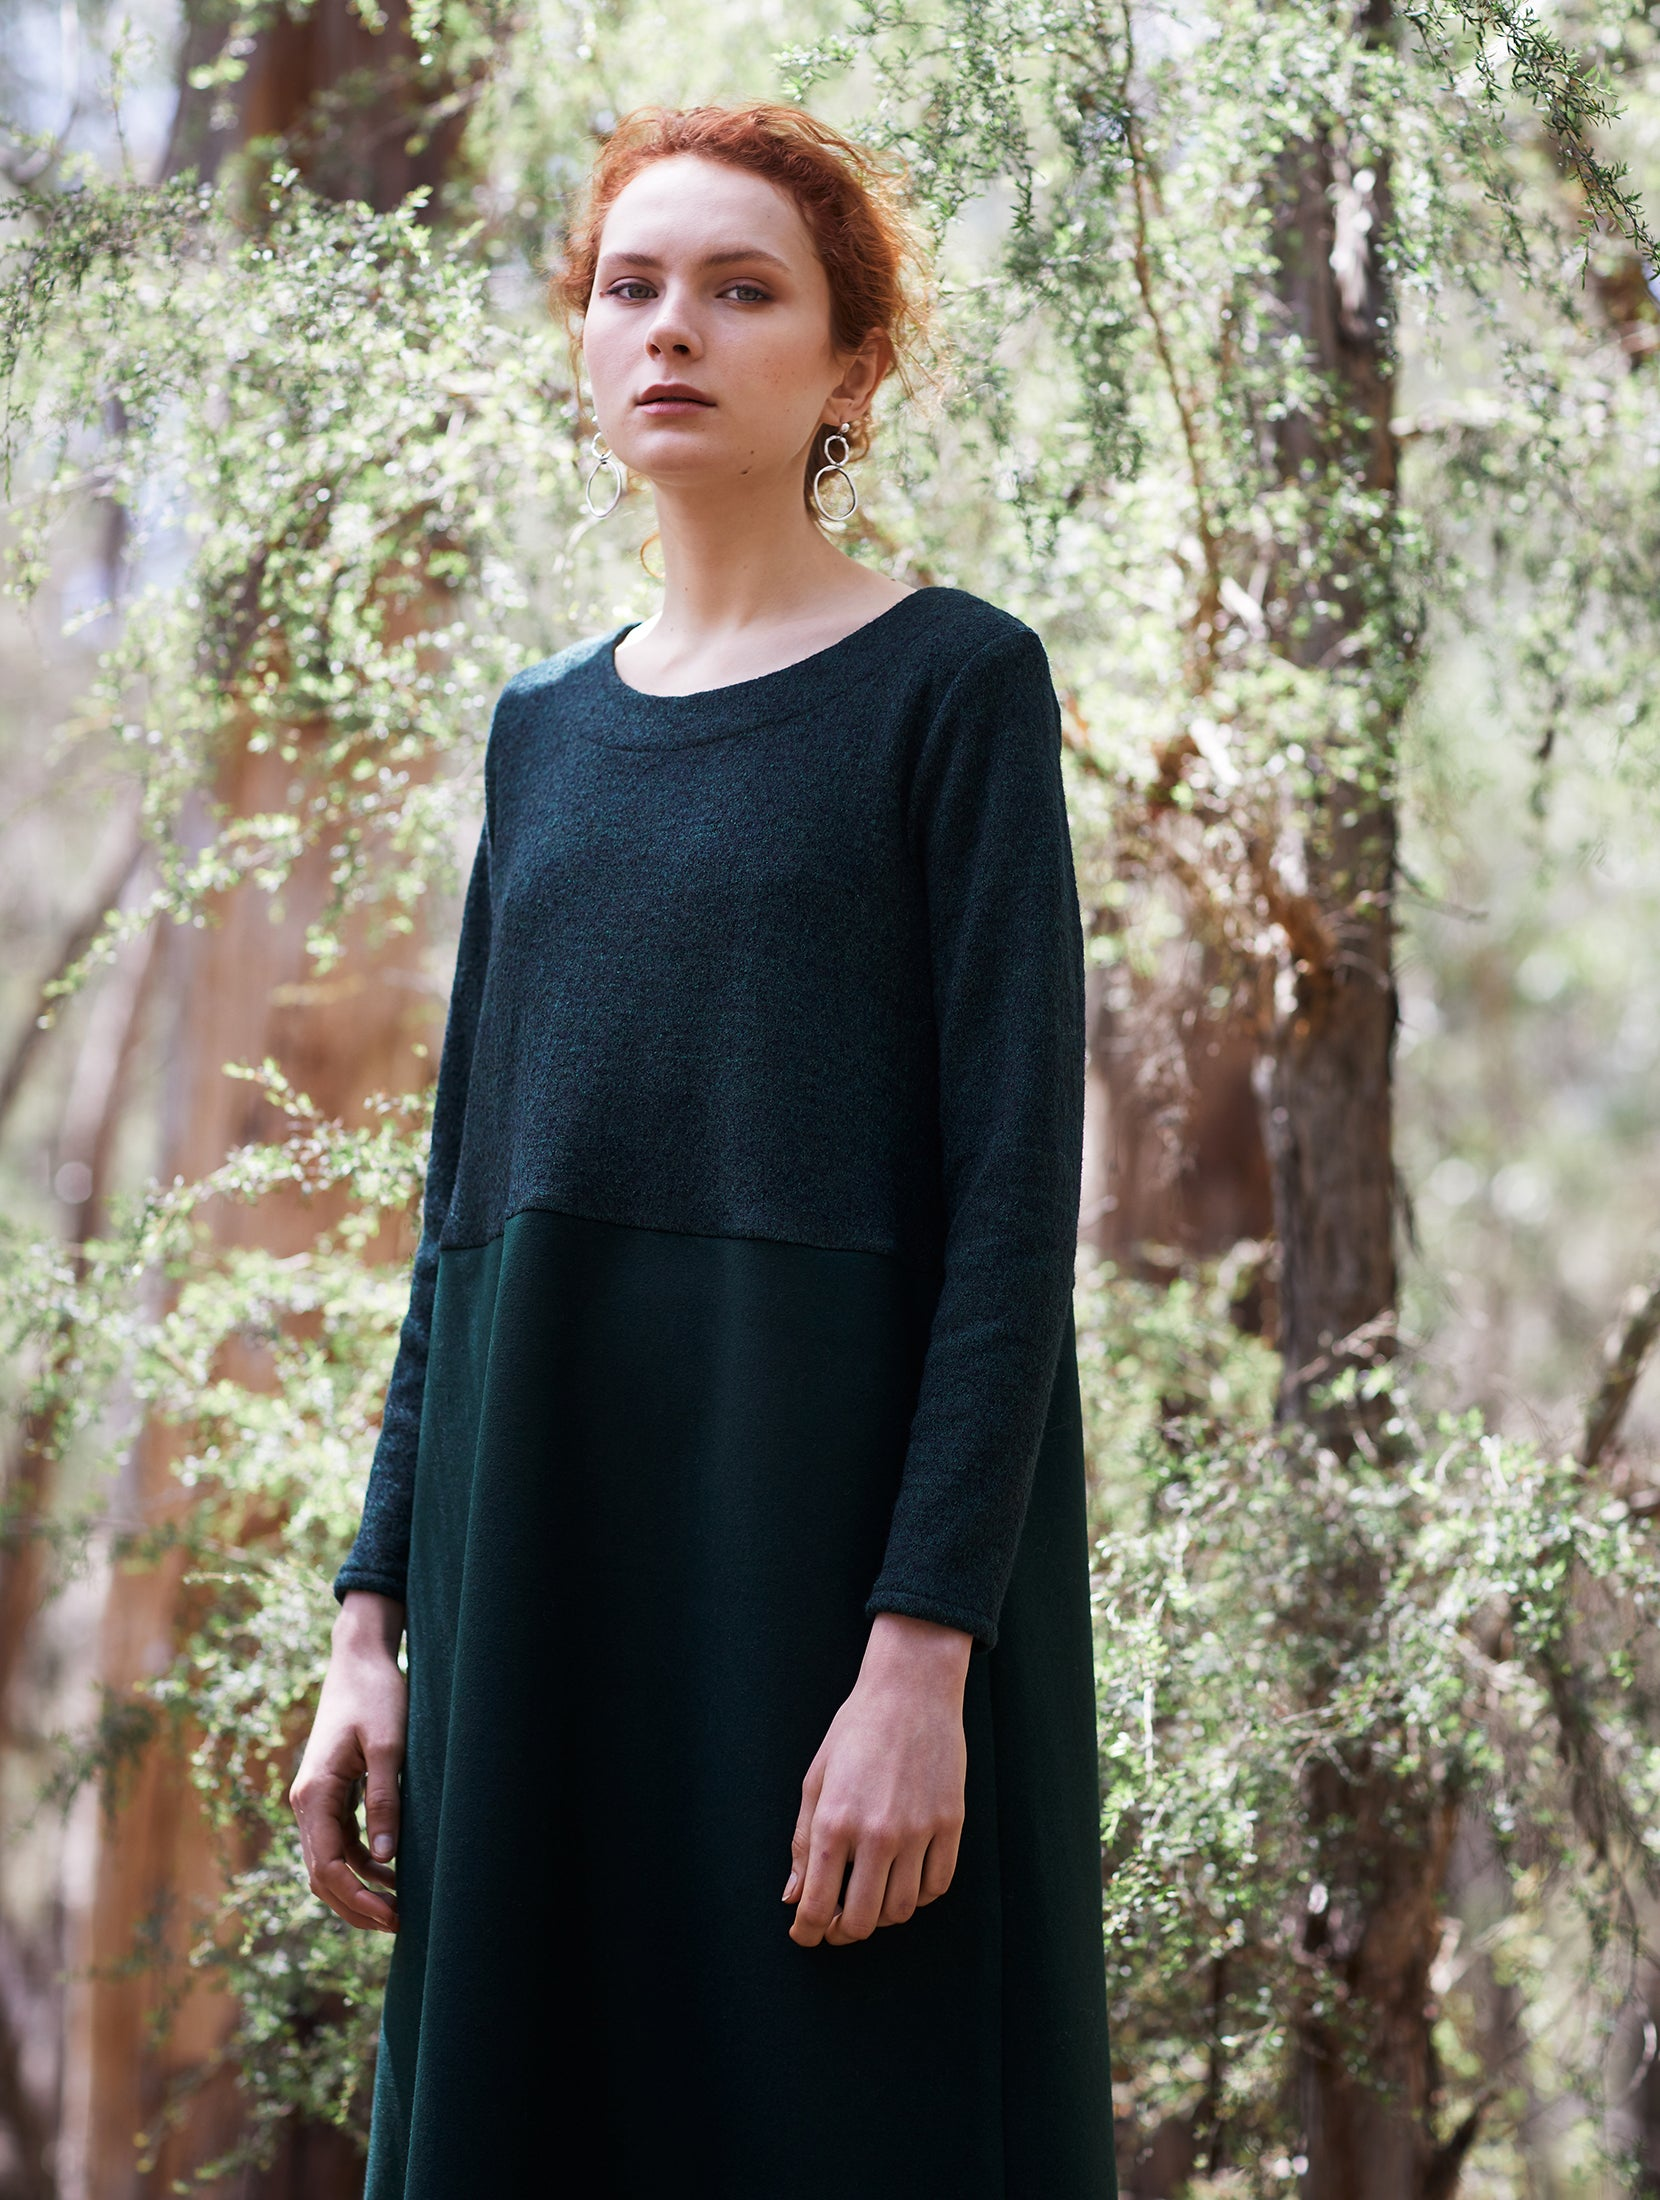 keegan AW19 Woodland Campaign Ethical Fashion Made in Melbourne Australia Green Wool Dress